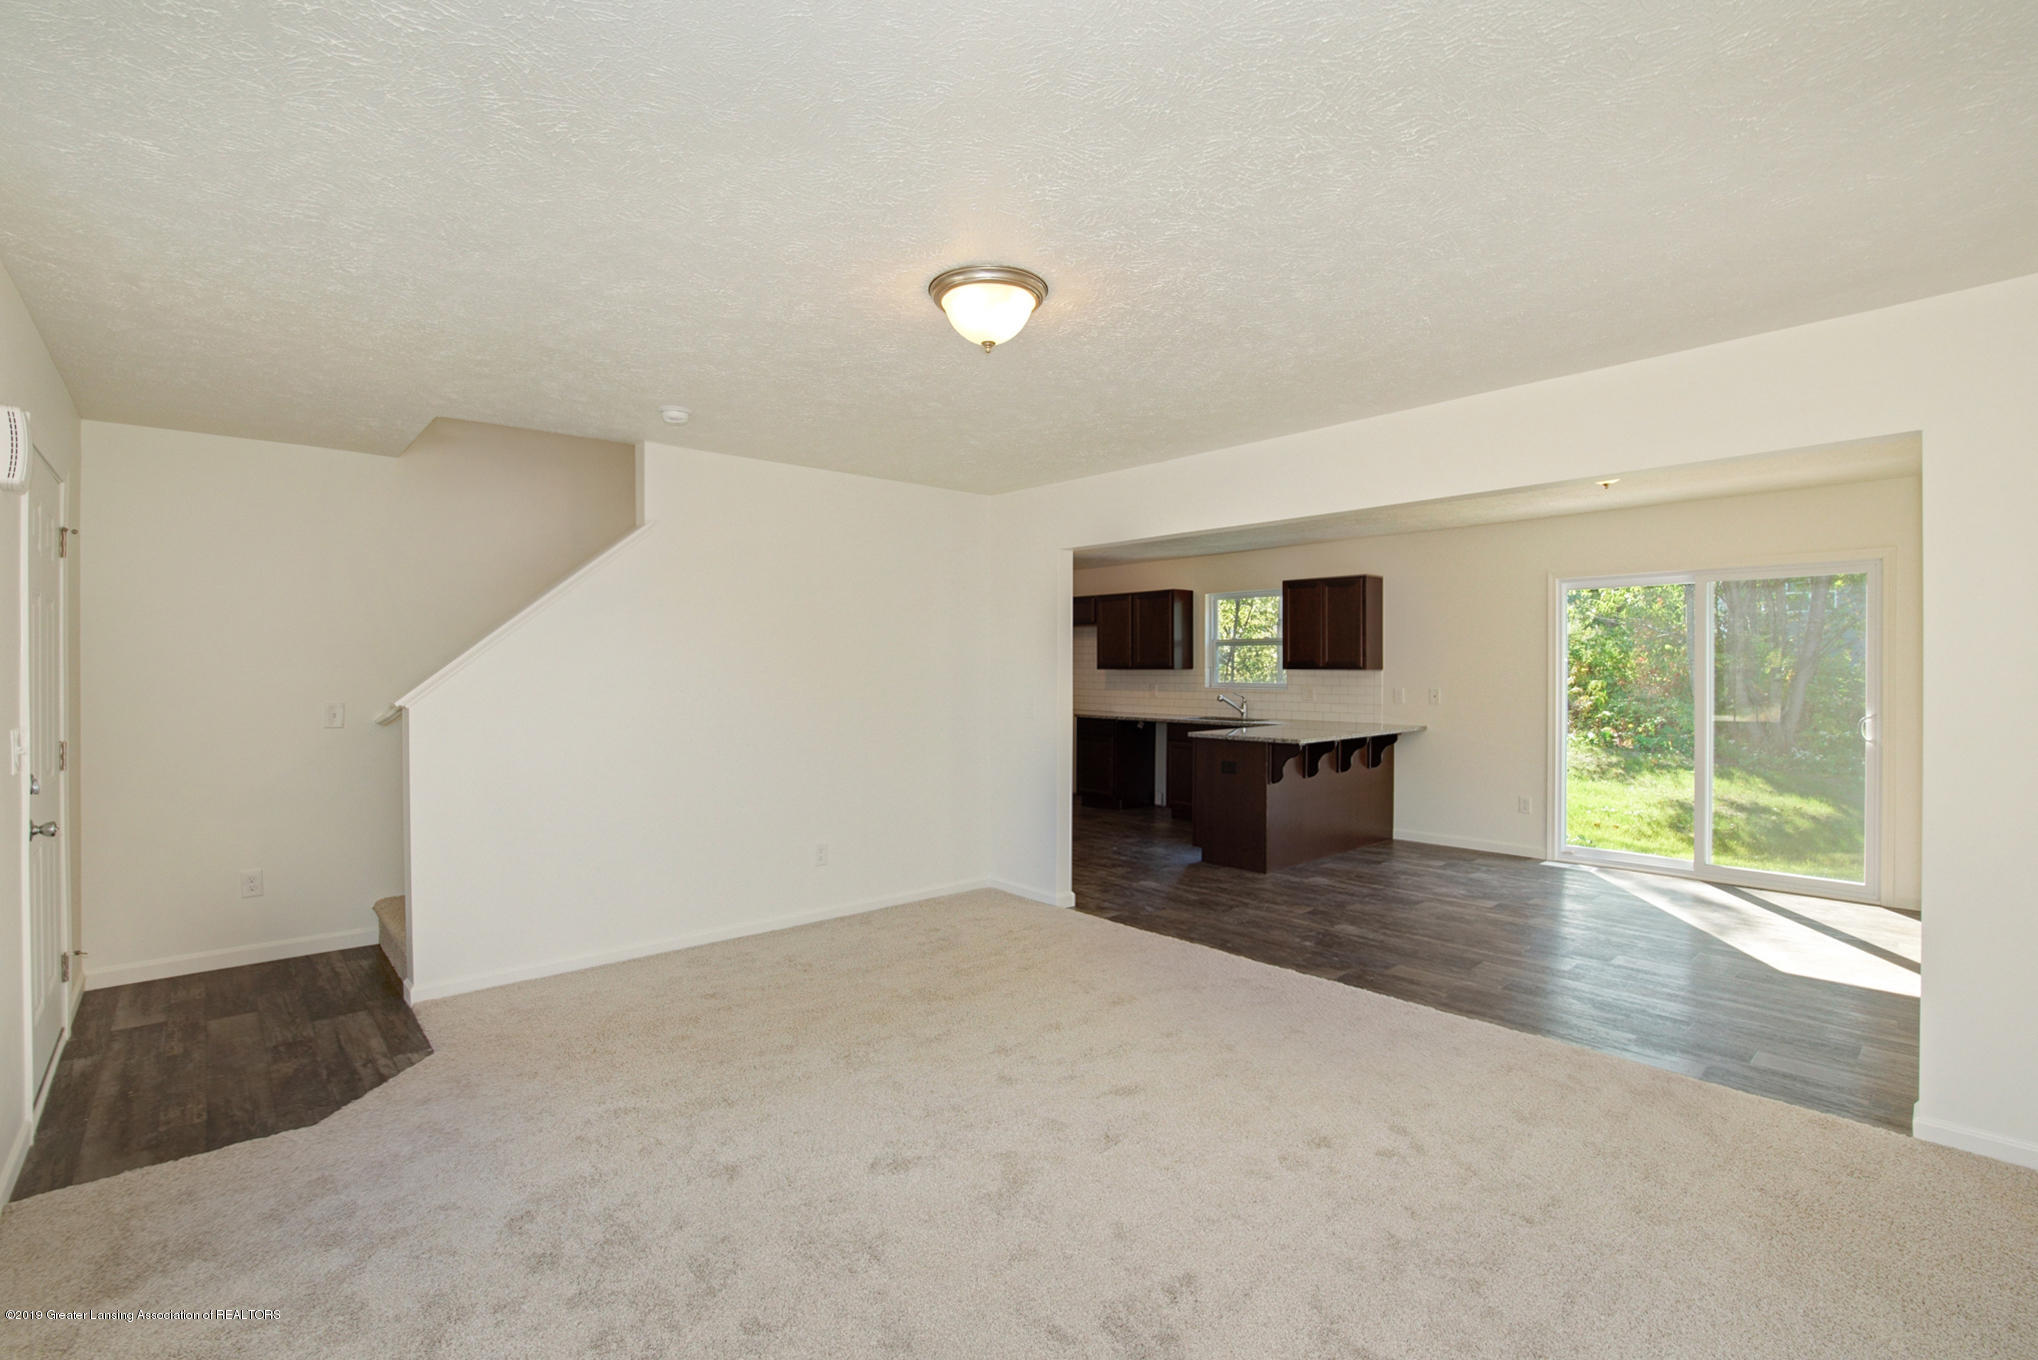 236 Noleigh - OAK079-i1810-Great Room1 - 4